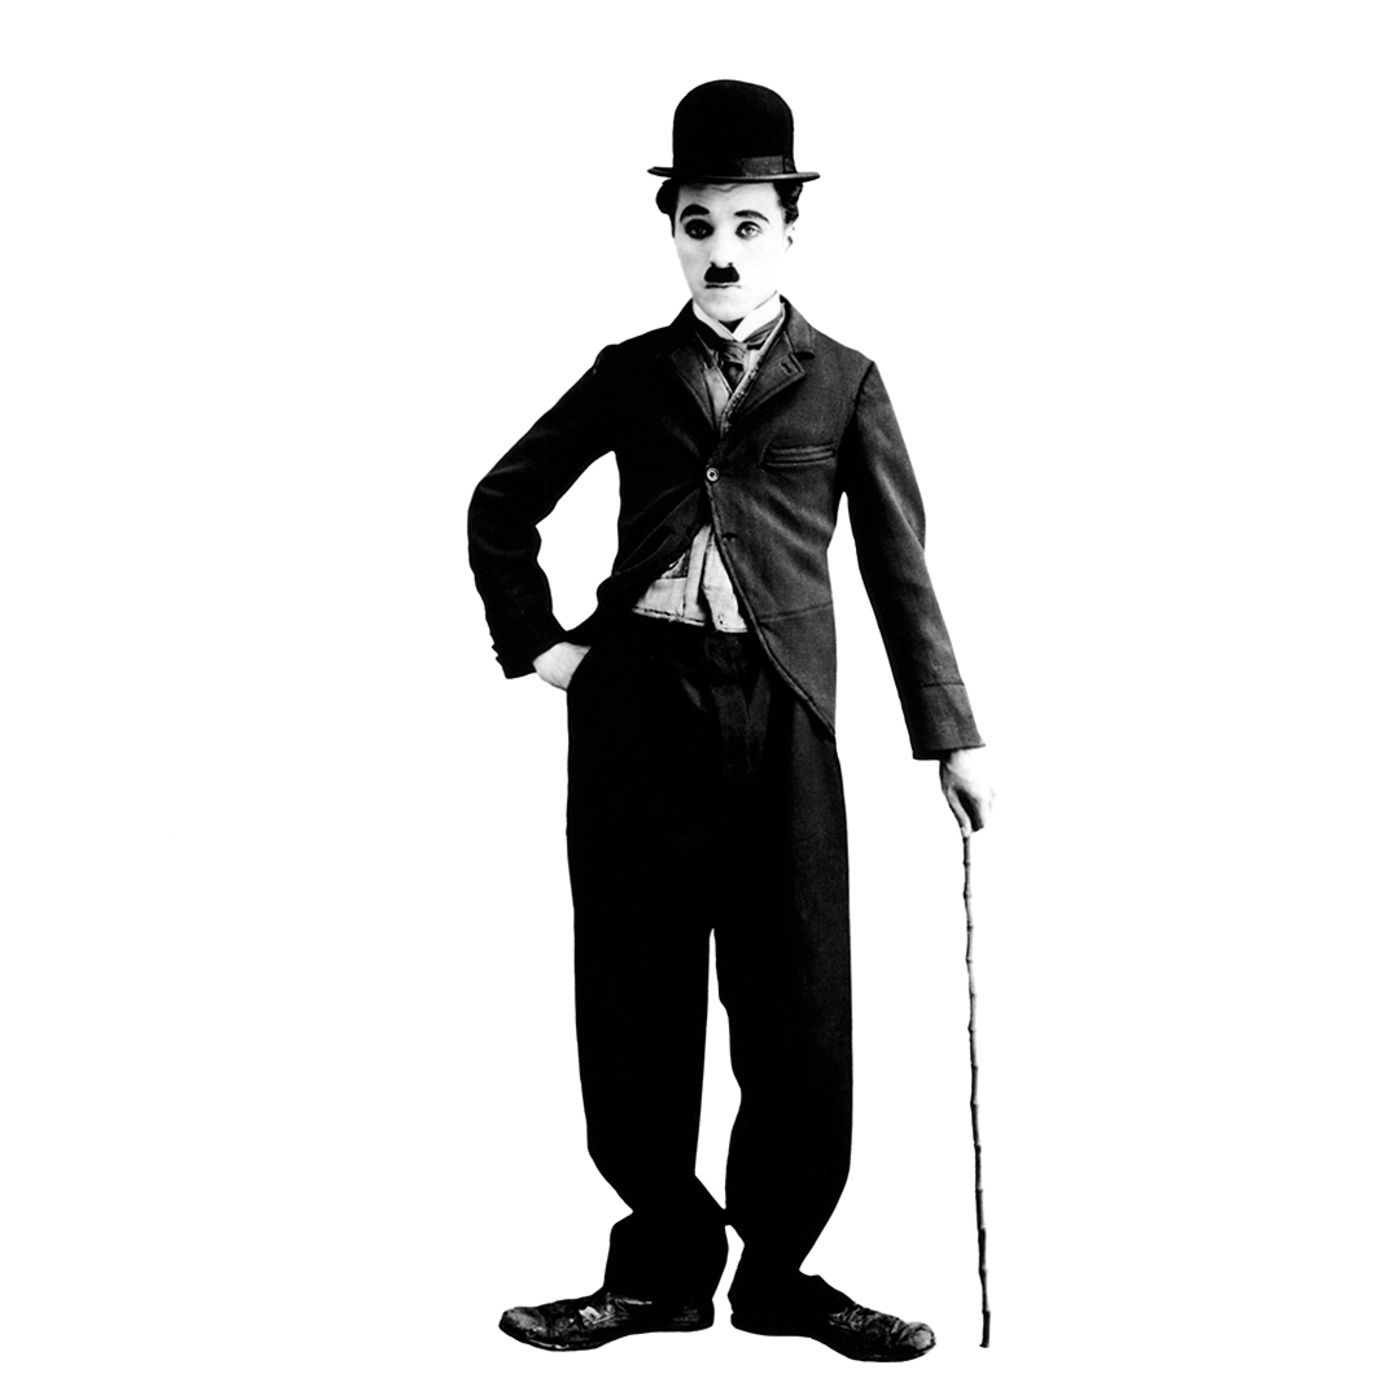 Episode 46 | Why is Charlie Chaplin Funny?